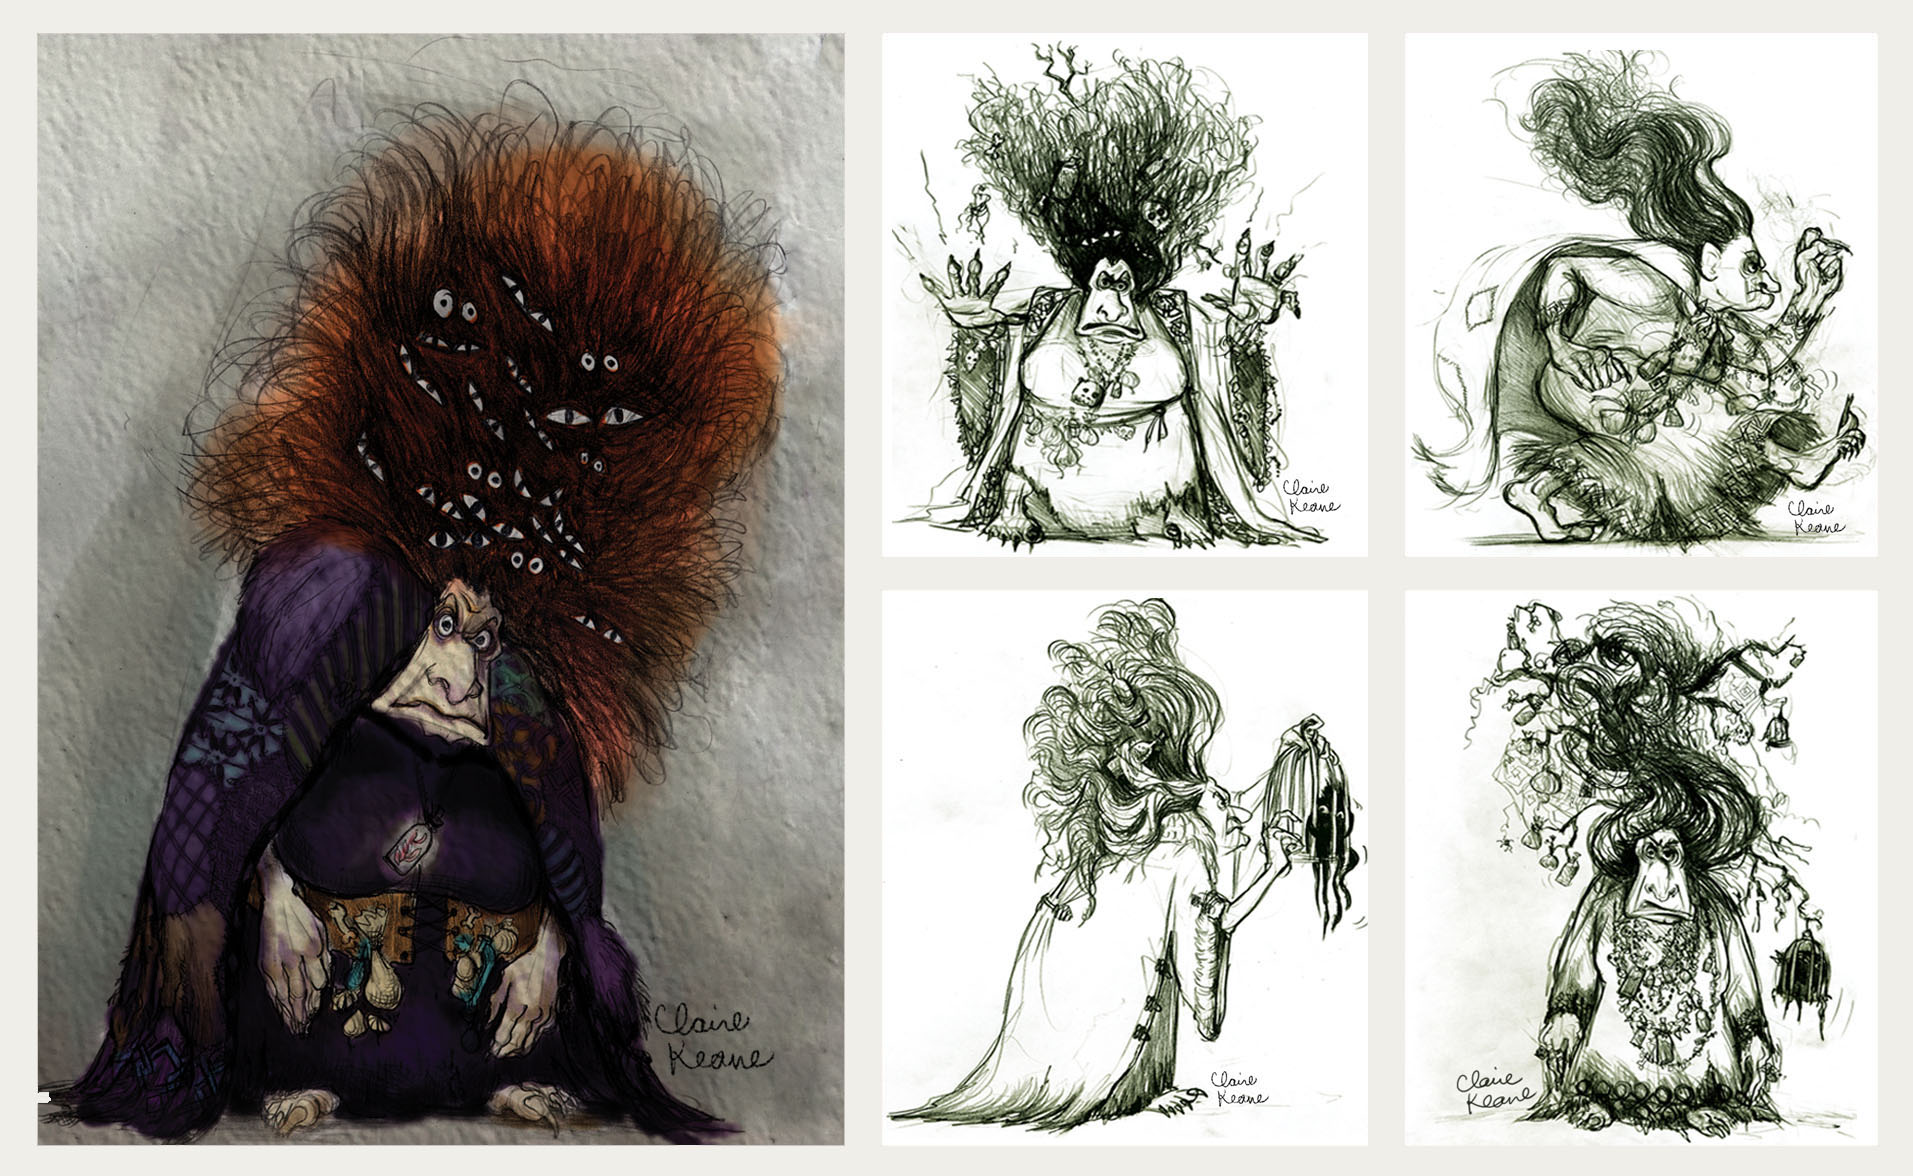 EARLY MOTHER GOTHEL COSTUME DESIGN//VISUAL DEVELOPMENT FOR TANGLED / RAPUNZEL UNBRAIDED